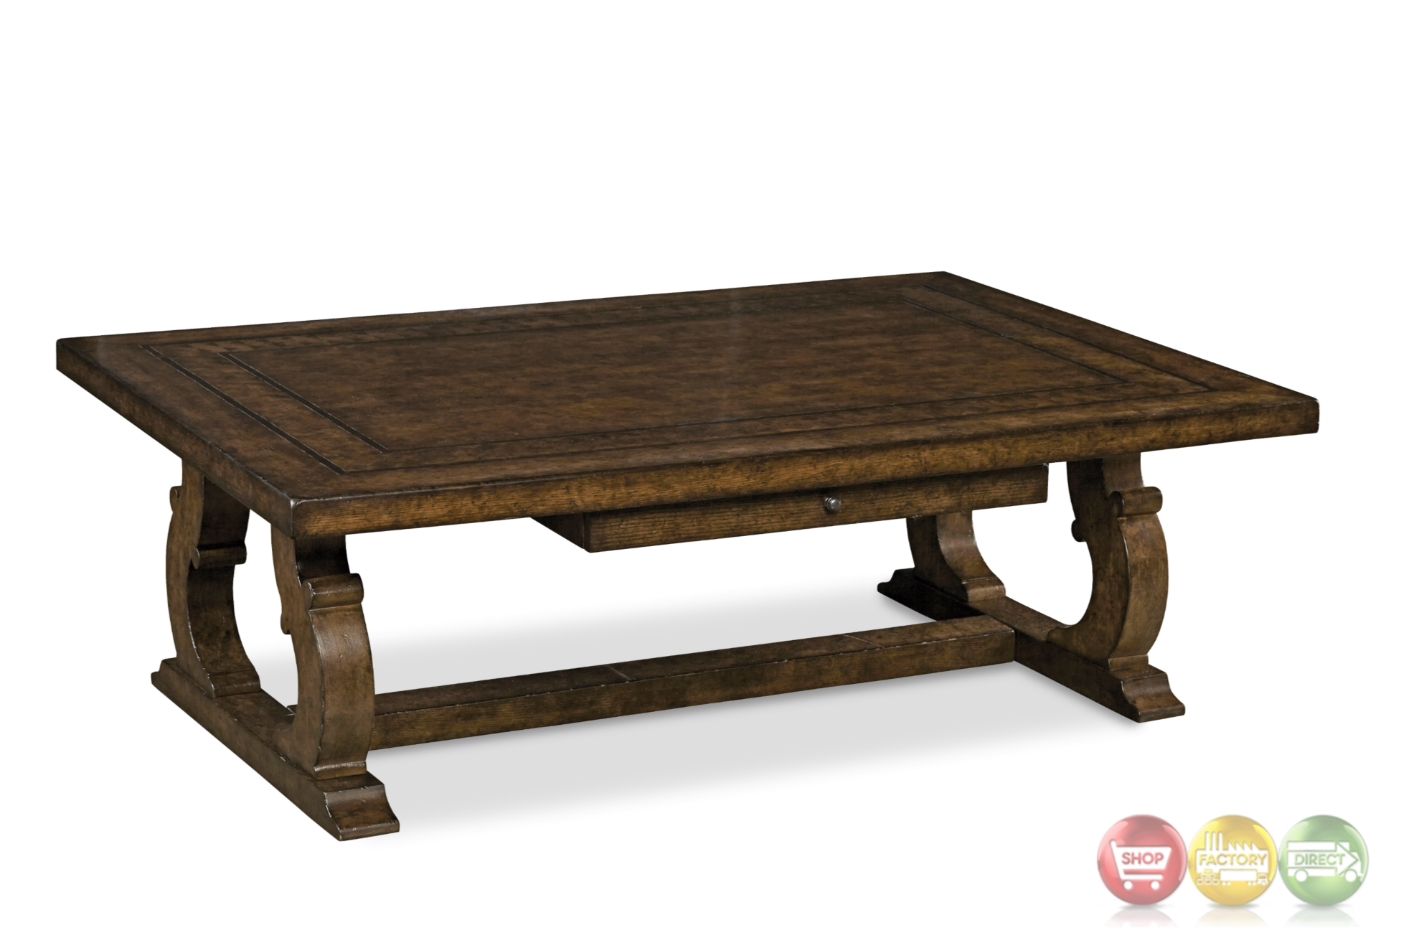 Firenze Ii Tuscan Rectangular Cocktail Table In Alder And Knotty Oak